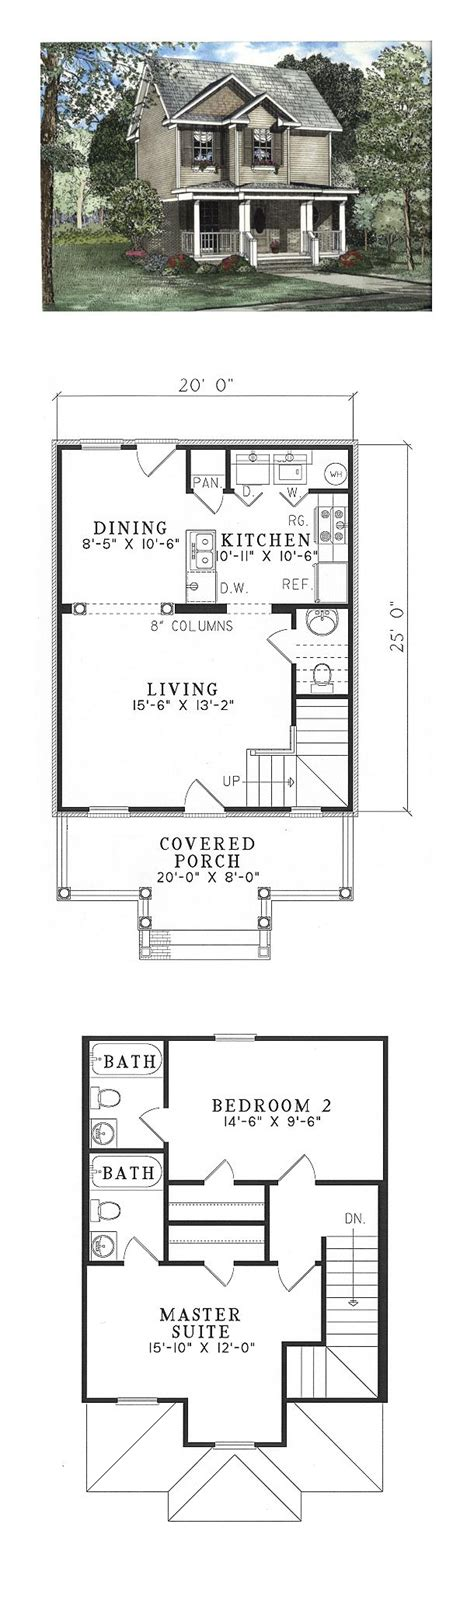 floor plans narrow lot best 25 narrow lot house plans ideas on pinterest